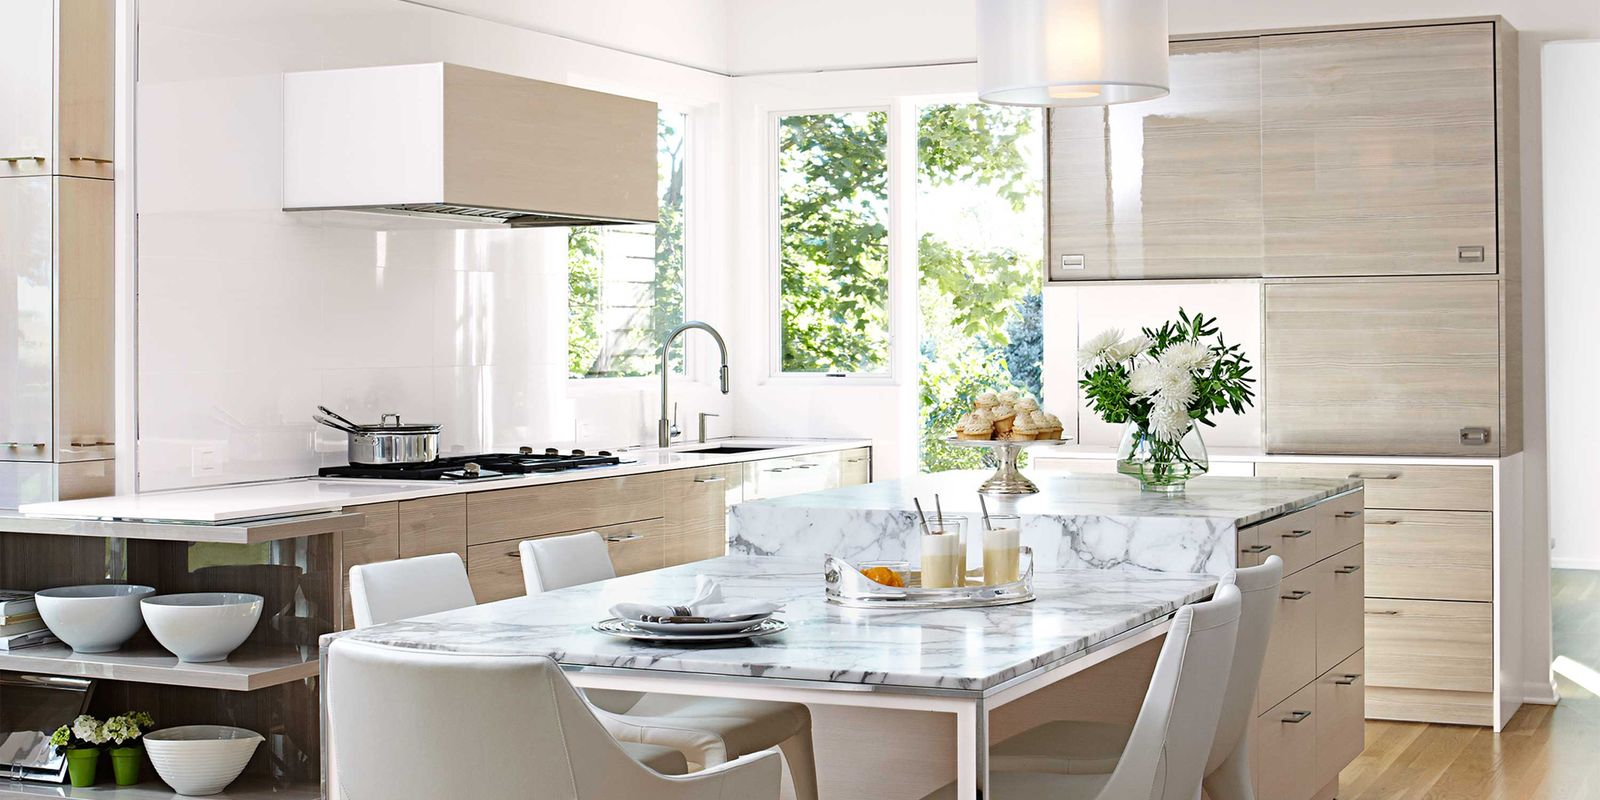 Airy and bright kitchen contemporary kitchen design for Bright kitchen decorating ideas